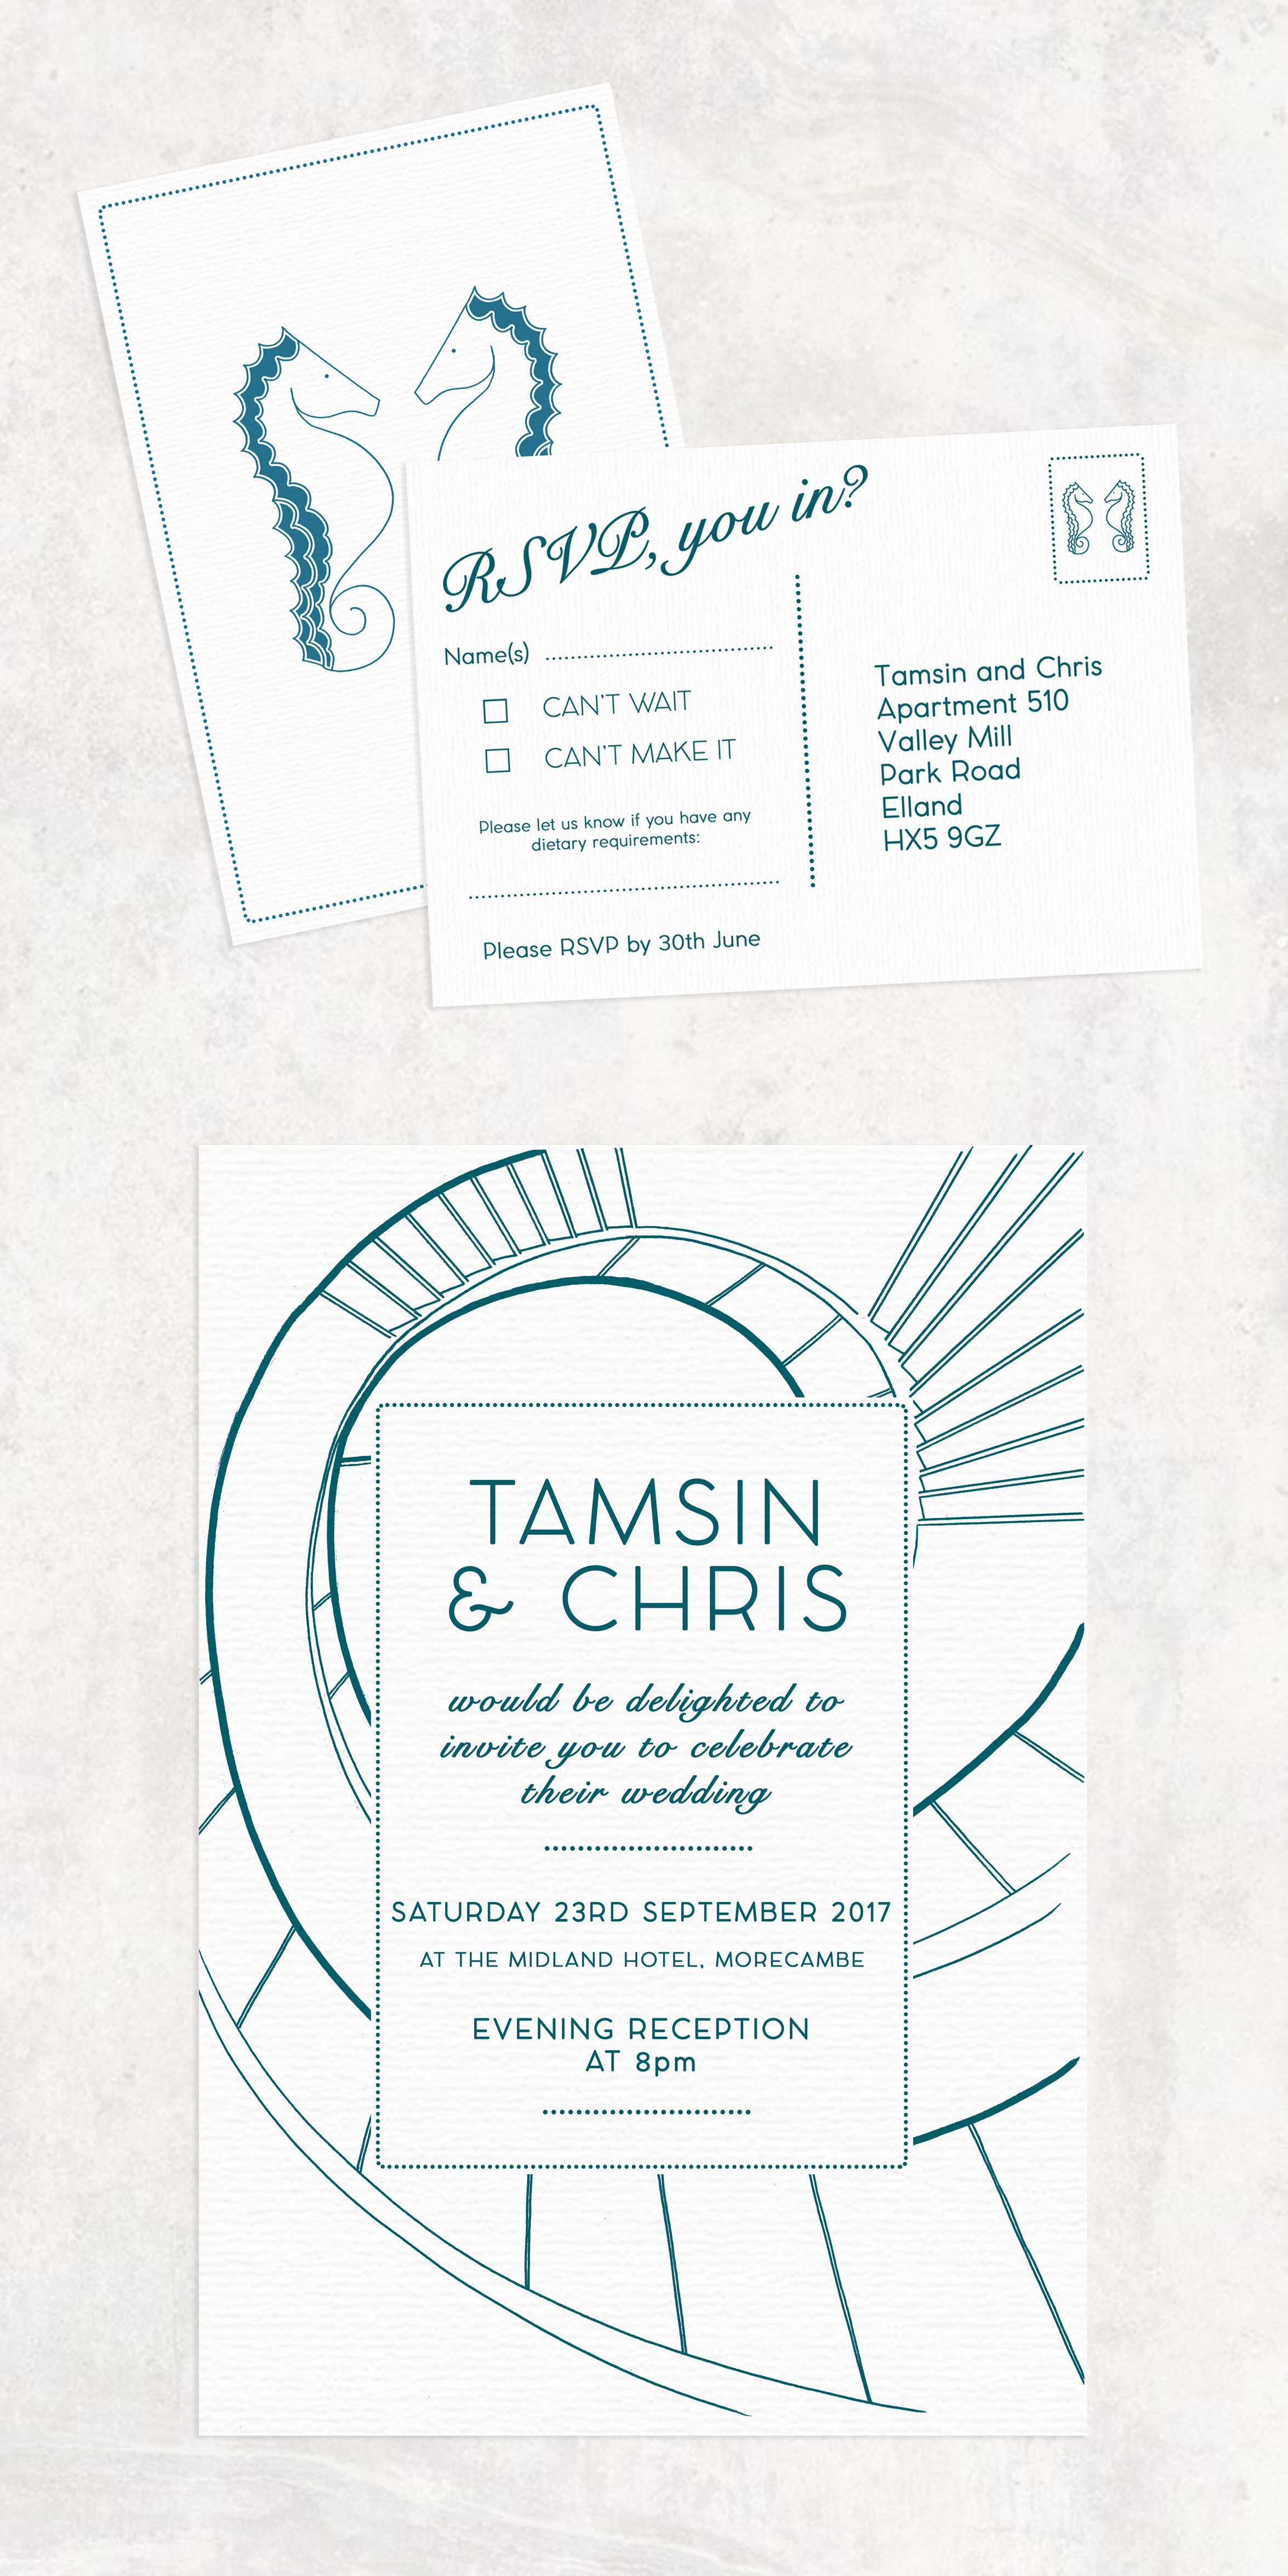 Invitation suite for Tamsin and Chris